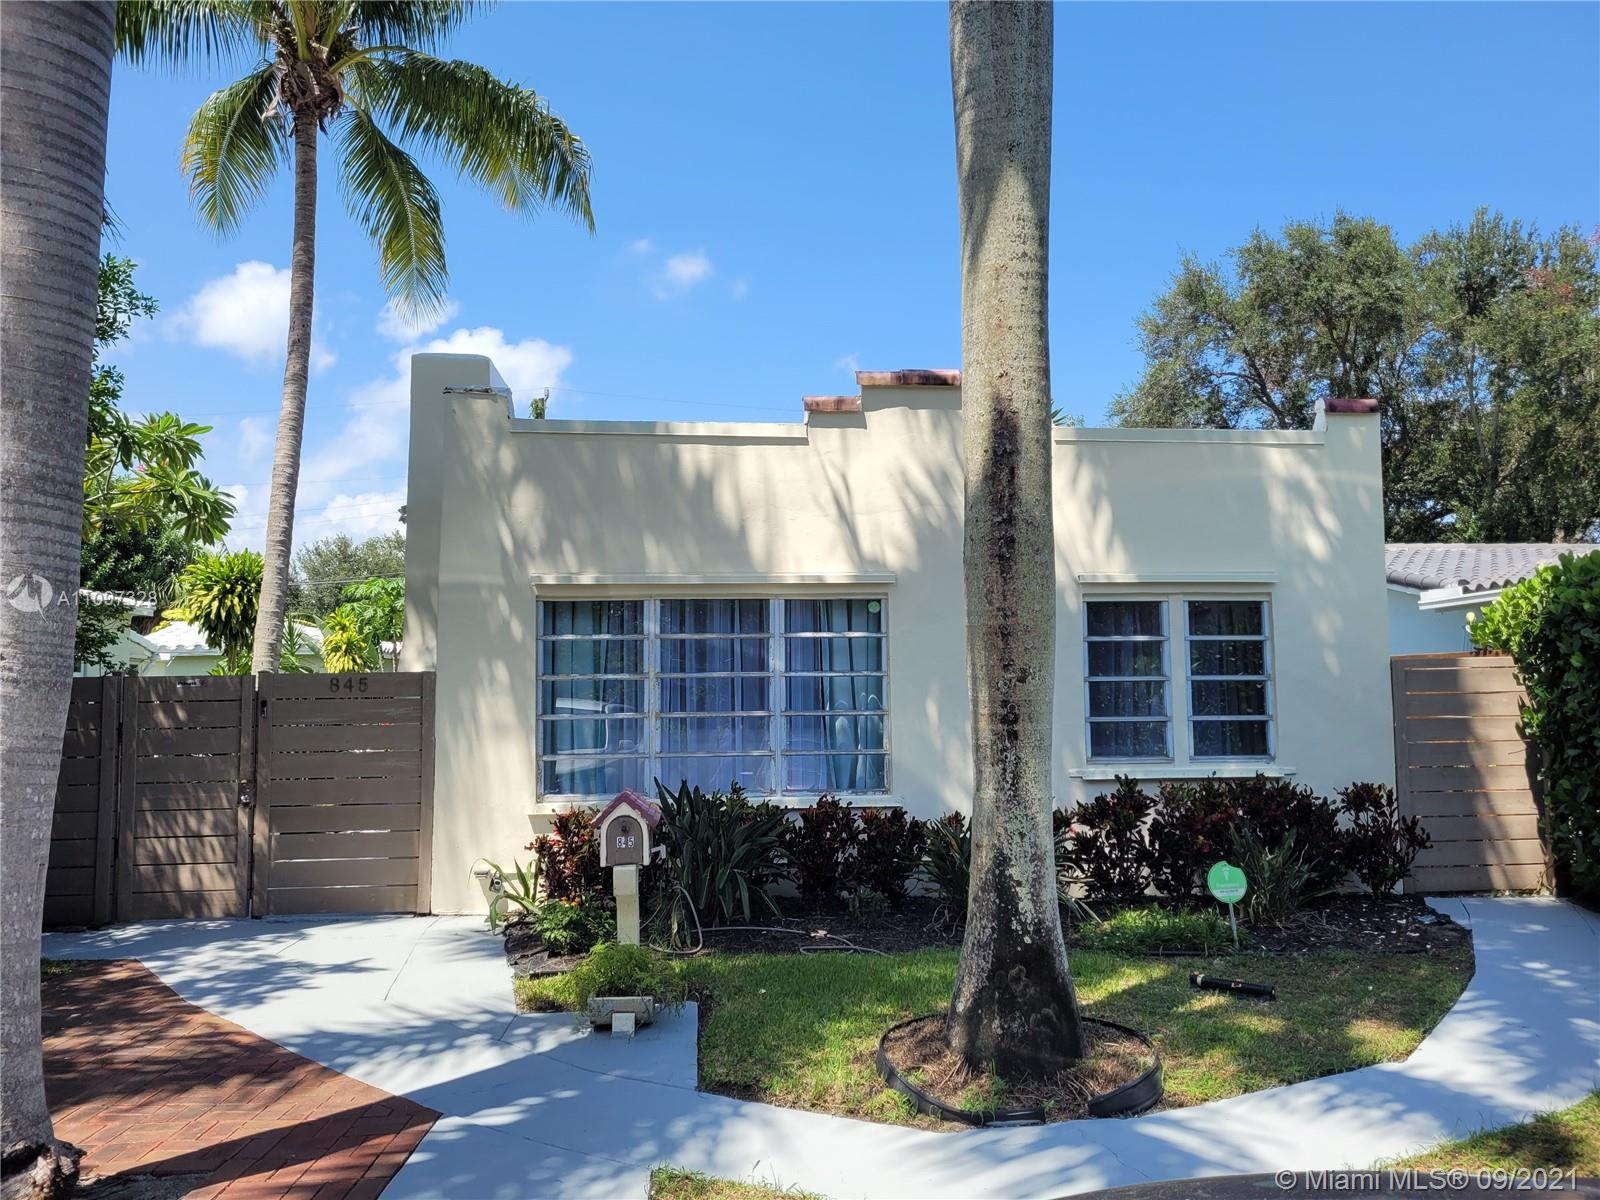 Single Family Home,For Sale,845 NE 119th St, Biscayne Park, Florida 33161,Brickell,realty,broker,condos near me